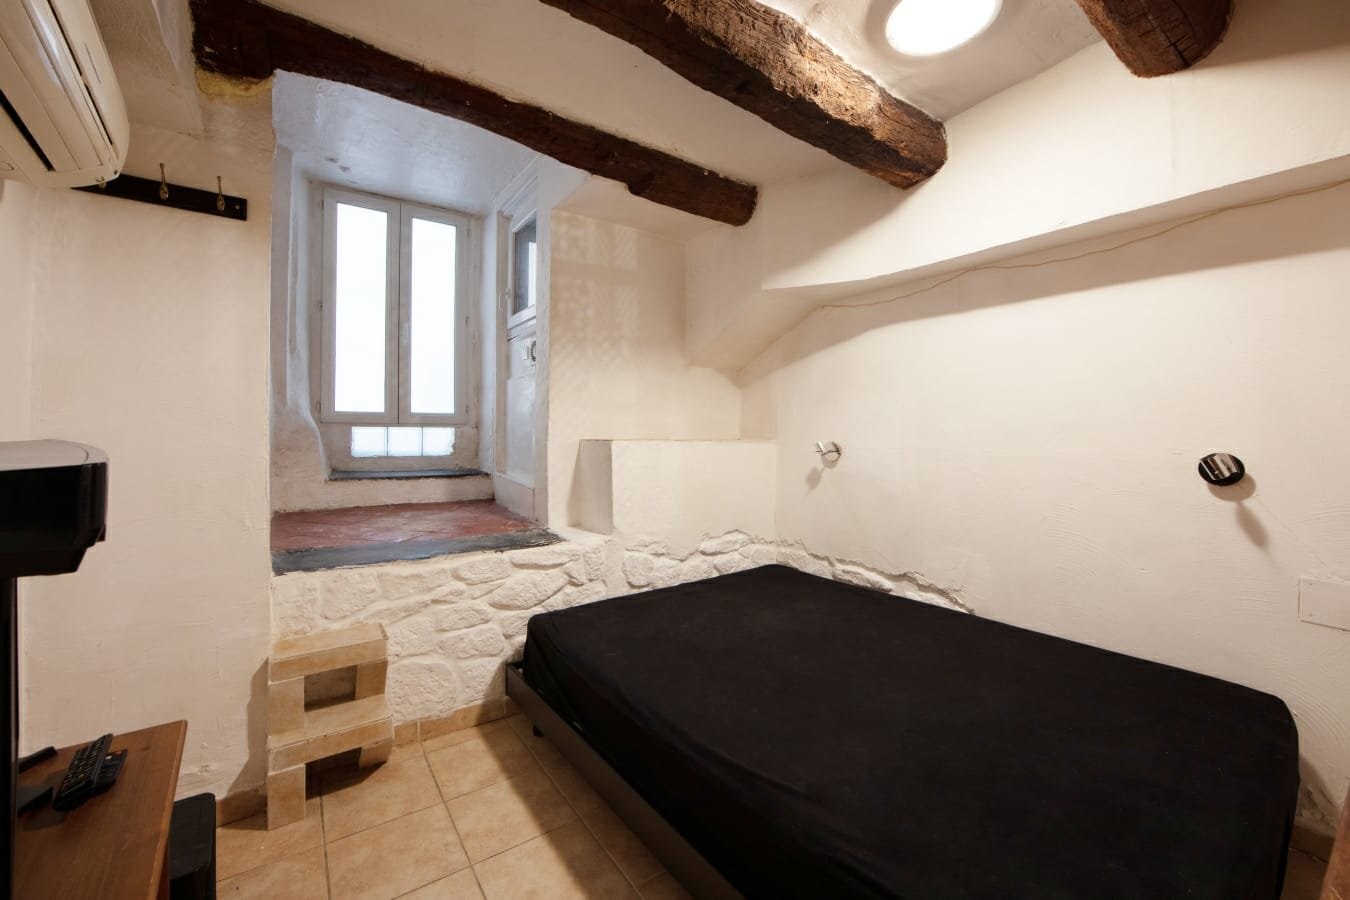 OLD TOWN NICE -  ATYPICAL 2 BEDROOMS APARTMENT